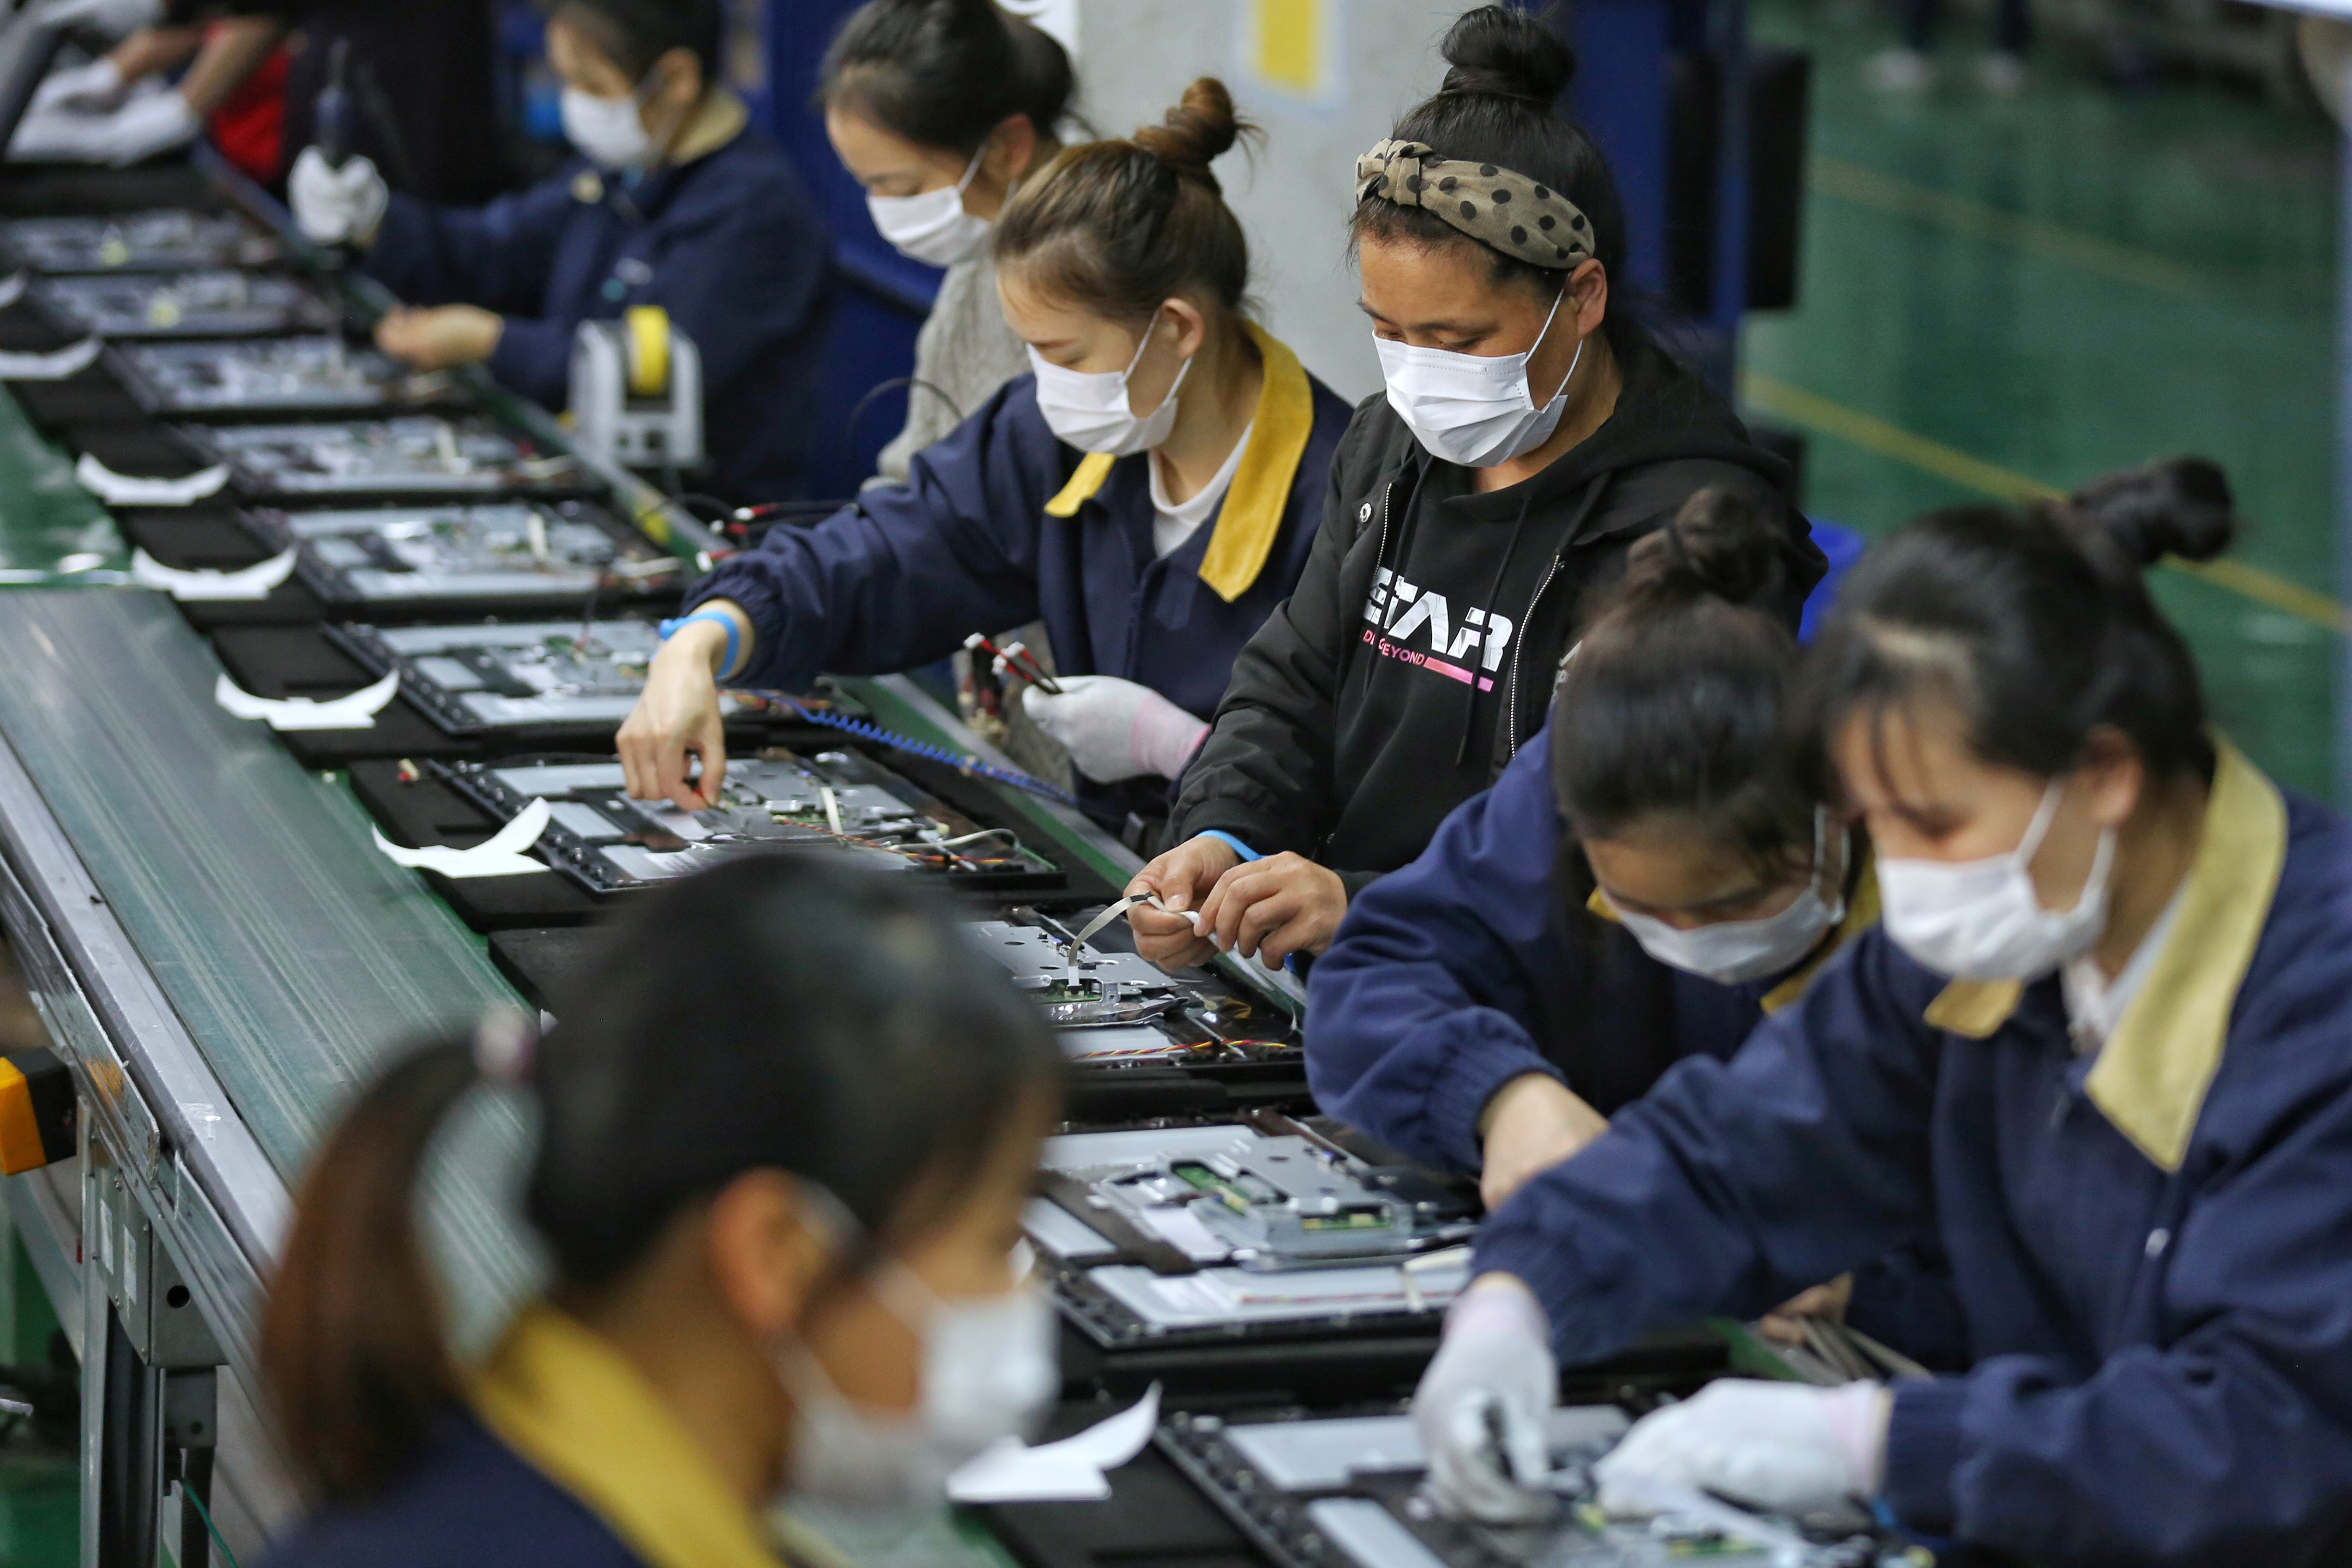 Employees, wearing masks, work on a production line manufacturing display monitors at a TPV factory in Wuhan, Hubei province, the epicentre of the novel coronavirus disease (COVID-19) outbreak in China, April 7, 2020. China Daily via REUTERS  ATTENTION EDITORS - THIS IMAGE WAS PROVIDED BY A THIRD PARTY. CHINA OUT. - RC2LZF9Q7S68